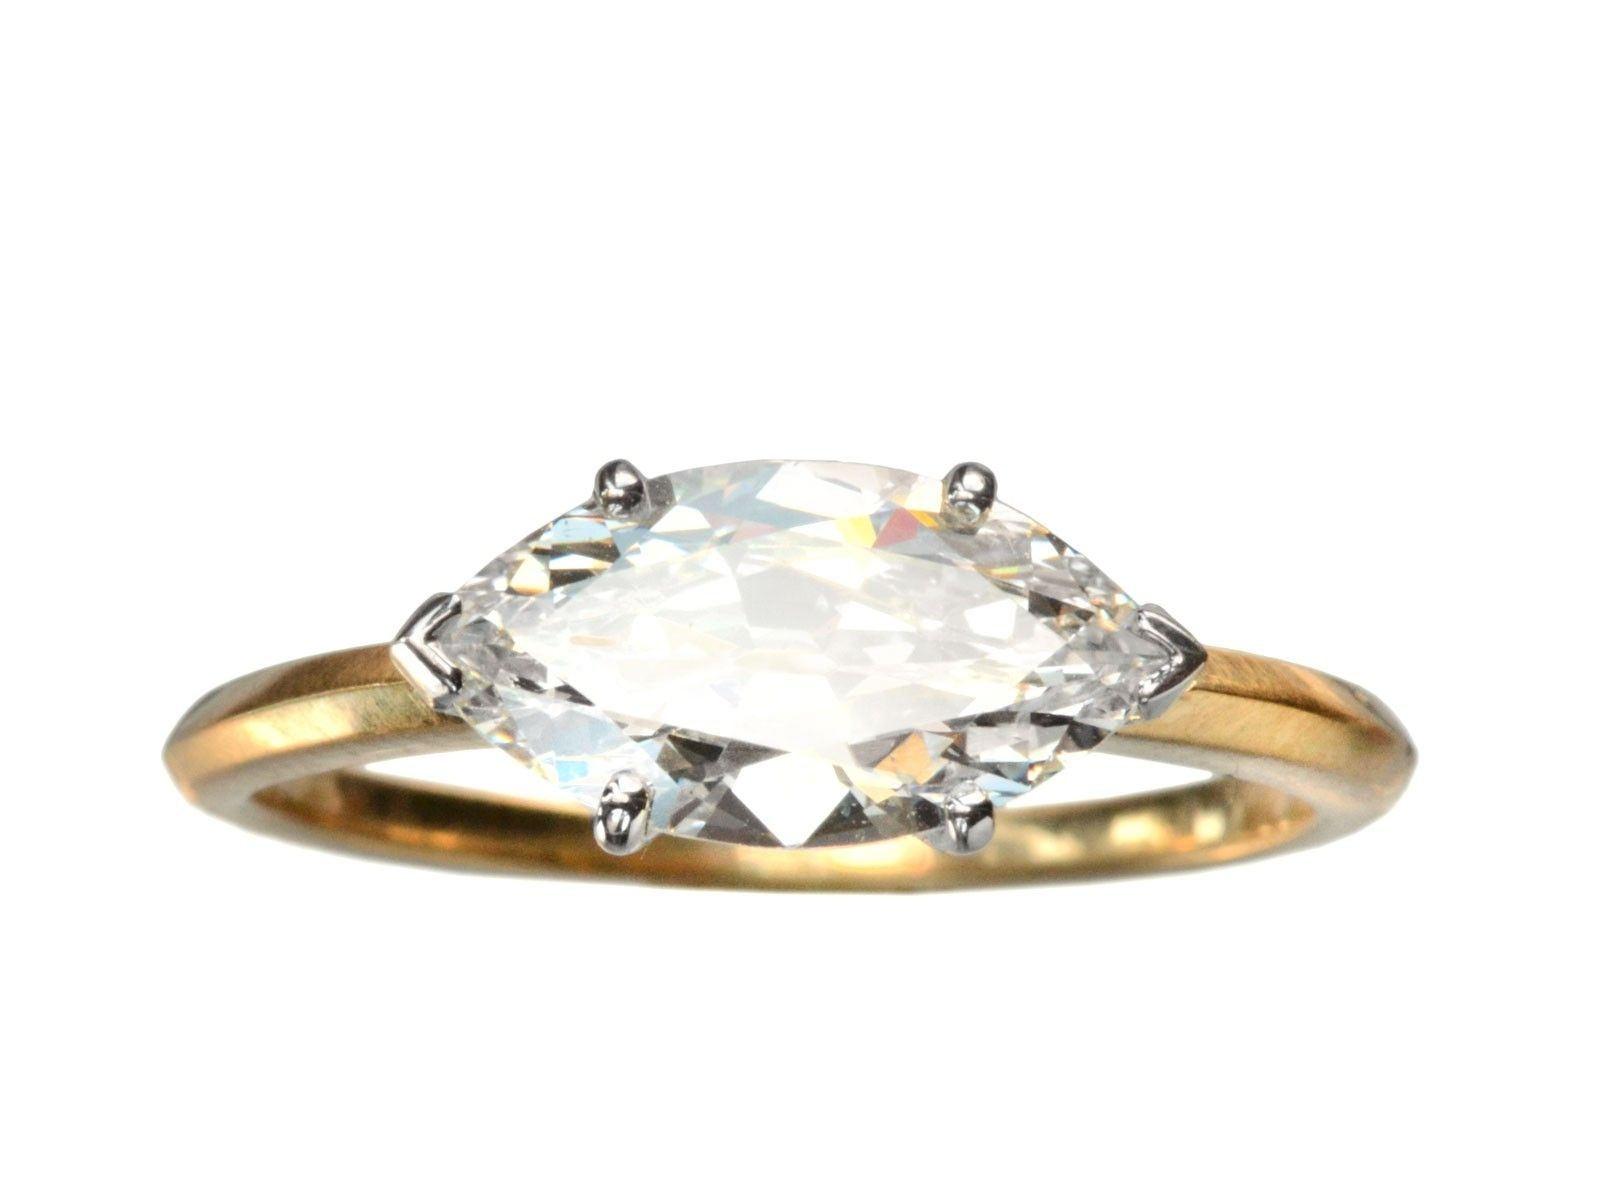 media deco carat engagement oval ring stone diamond settings jewellery setting white art halo gold vintage